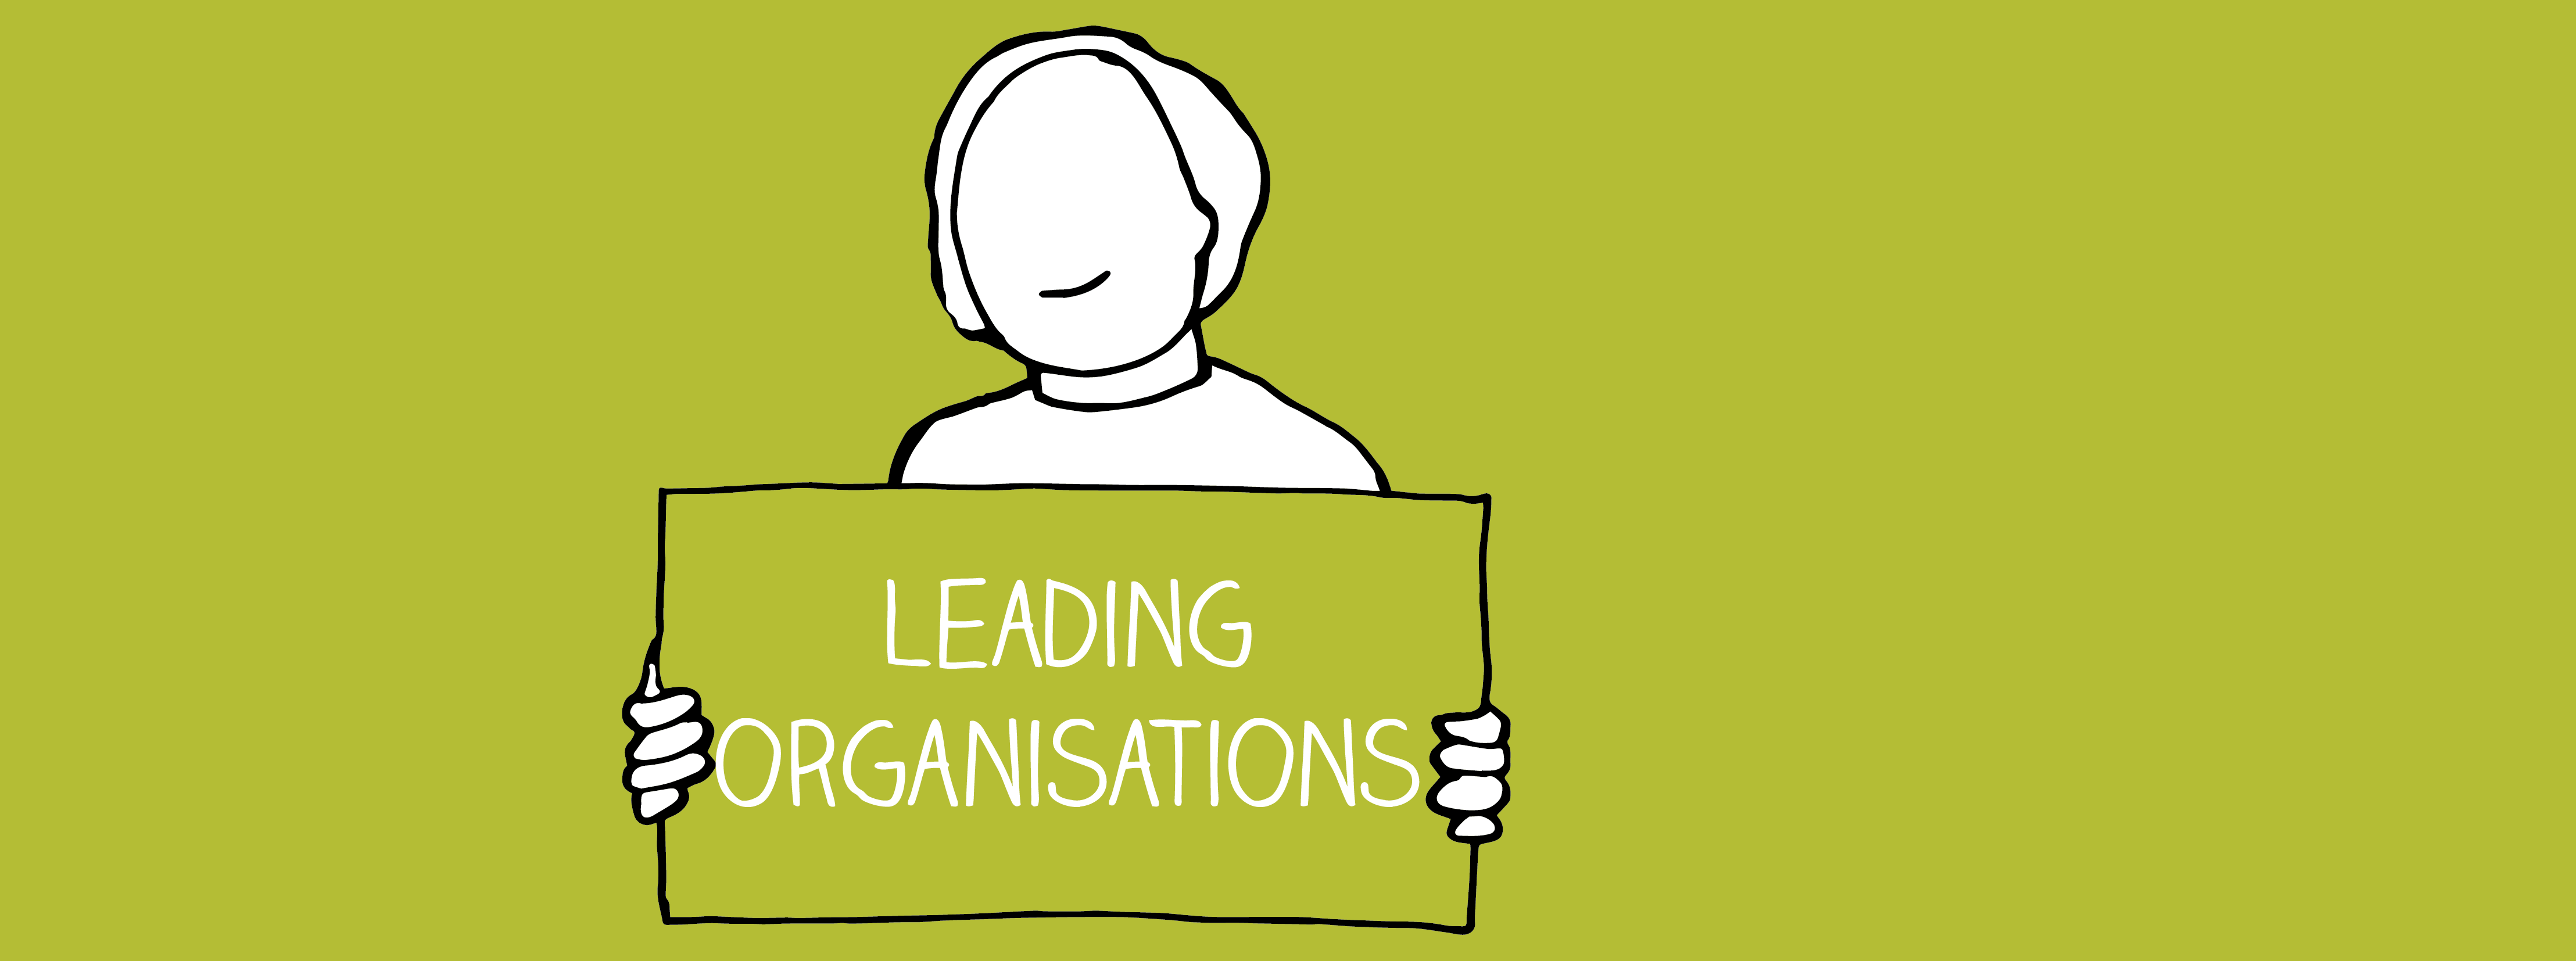 Leading organisations